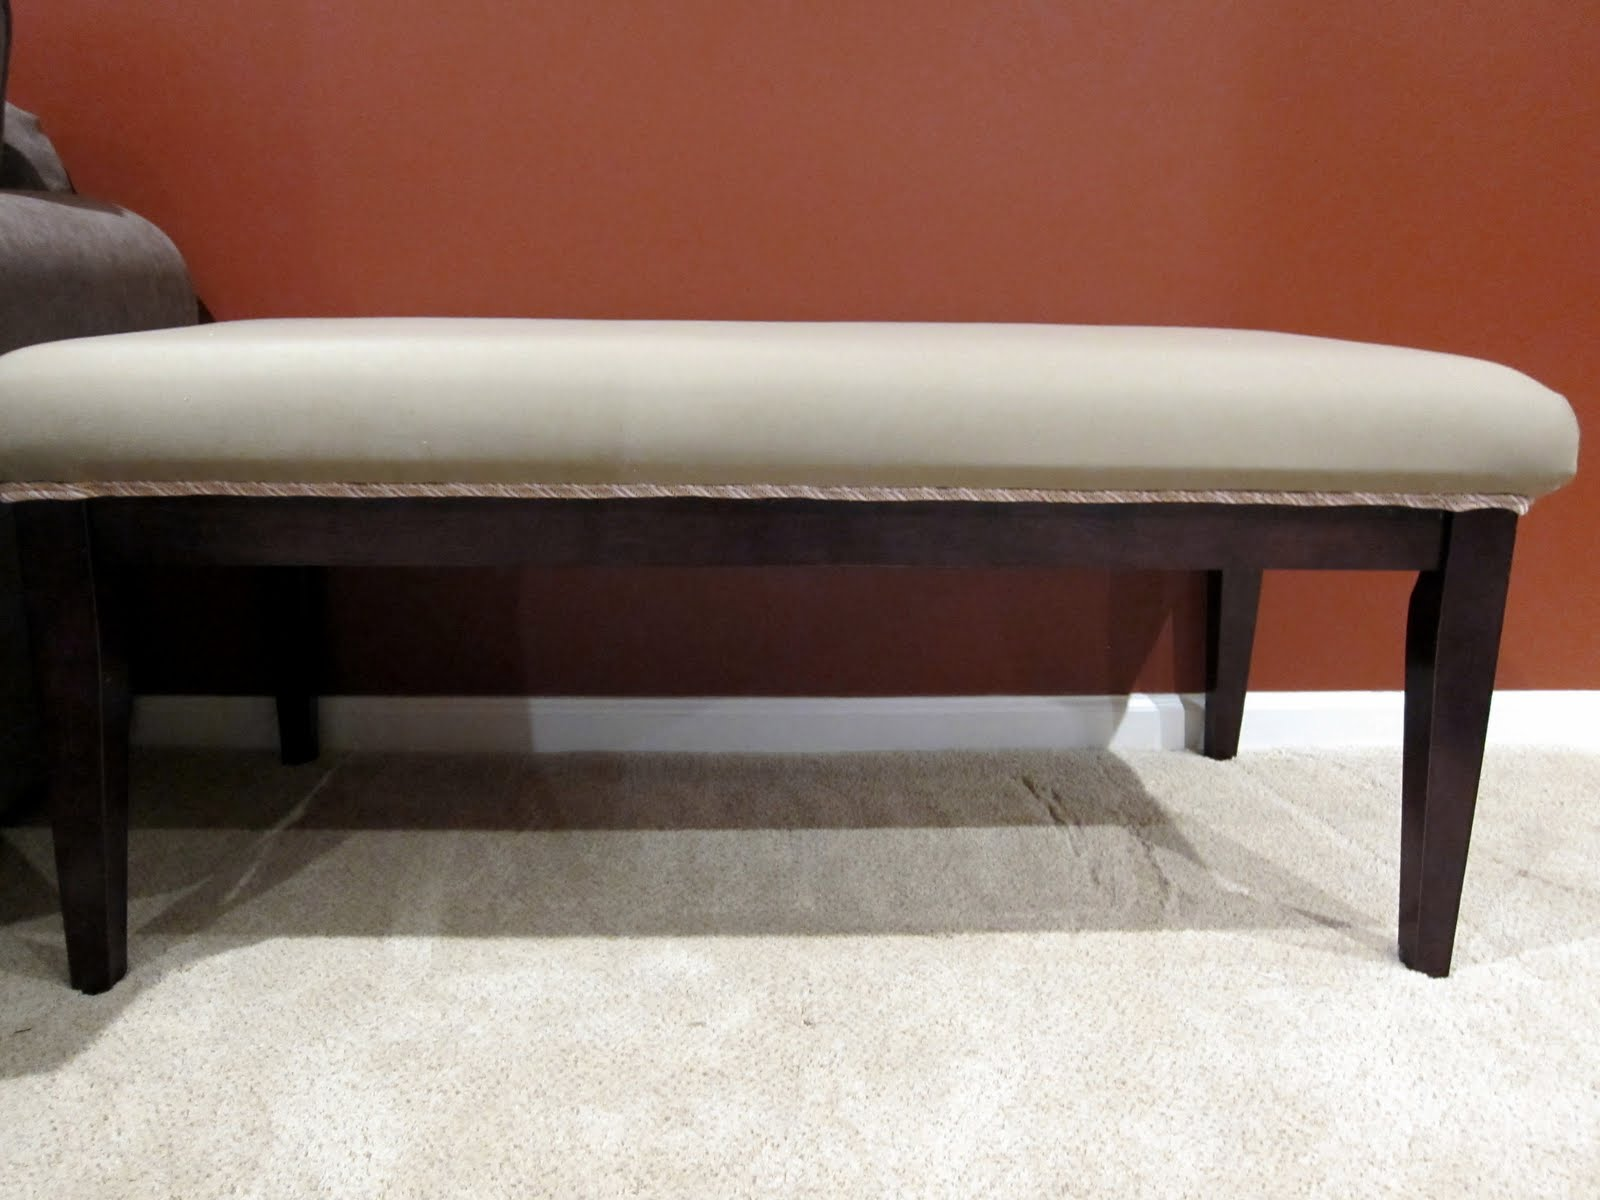 Benched: a coffee table rehab ~ Madigan Made { simple DIY ideas